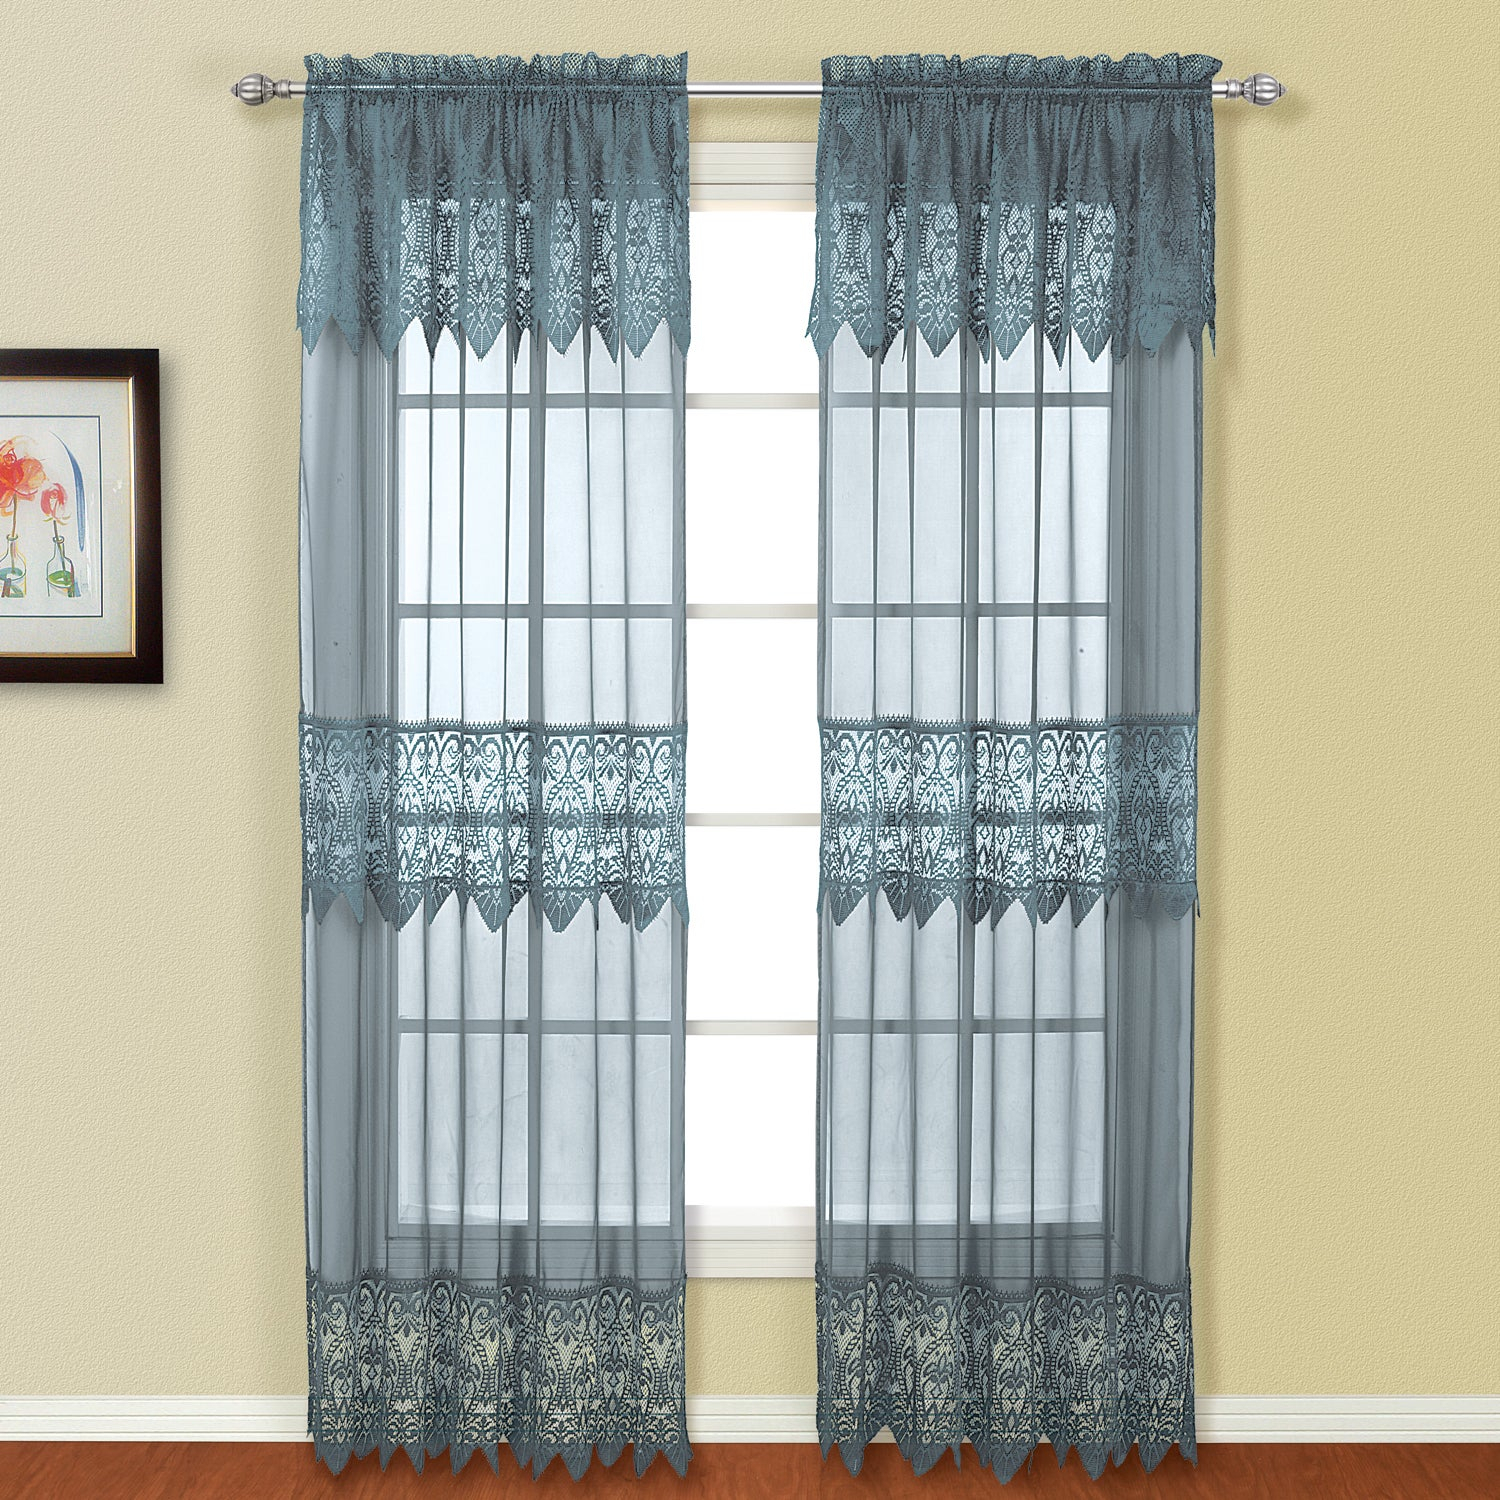 Details About Luxury Collection Valerie Semi-Sheer Curtain Panel Pair pertaining to Luxury Collection Venetian Sheer Curtain Panel Pairs (Image 6 of 20)